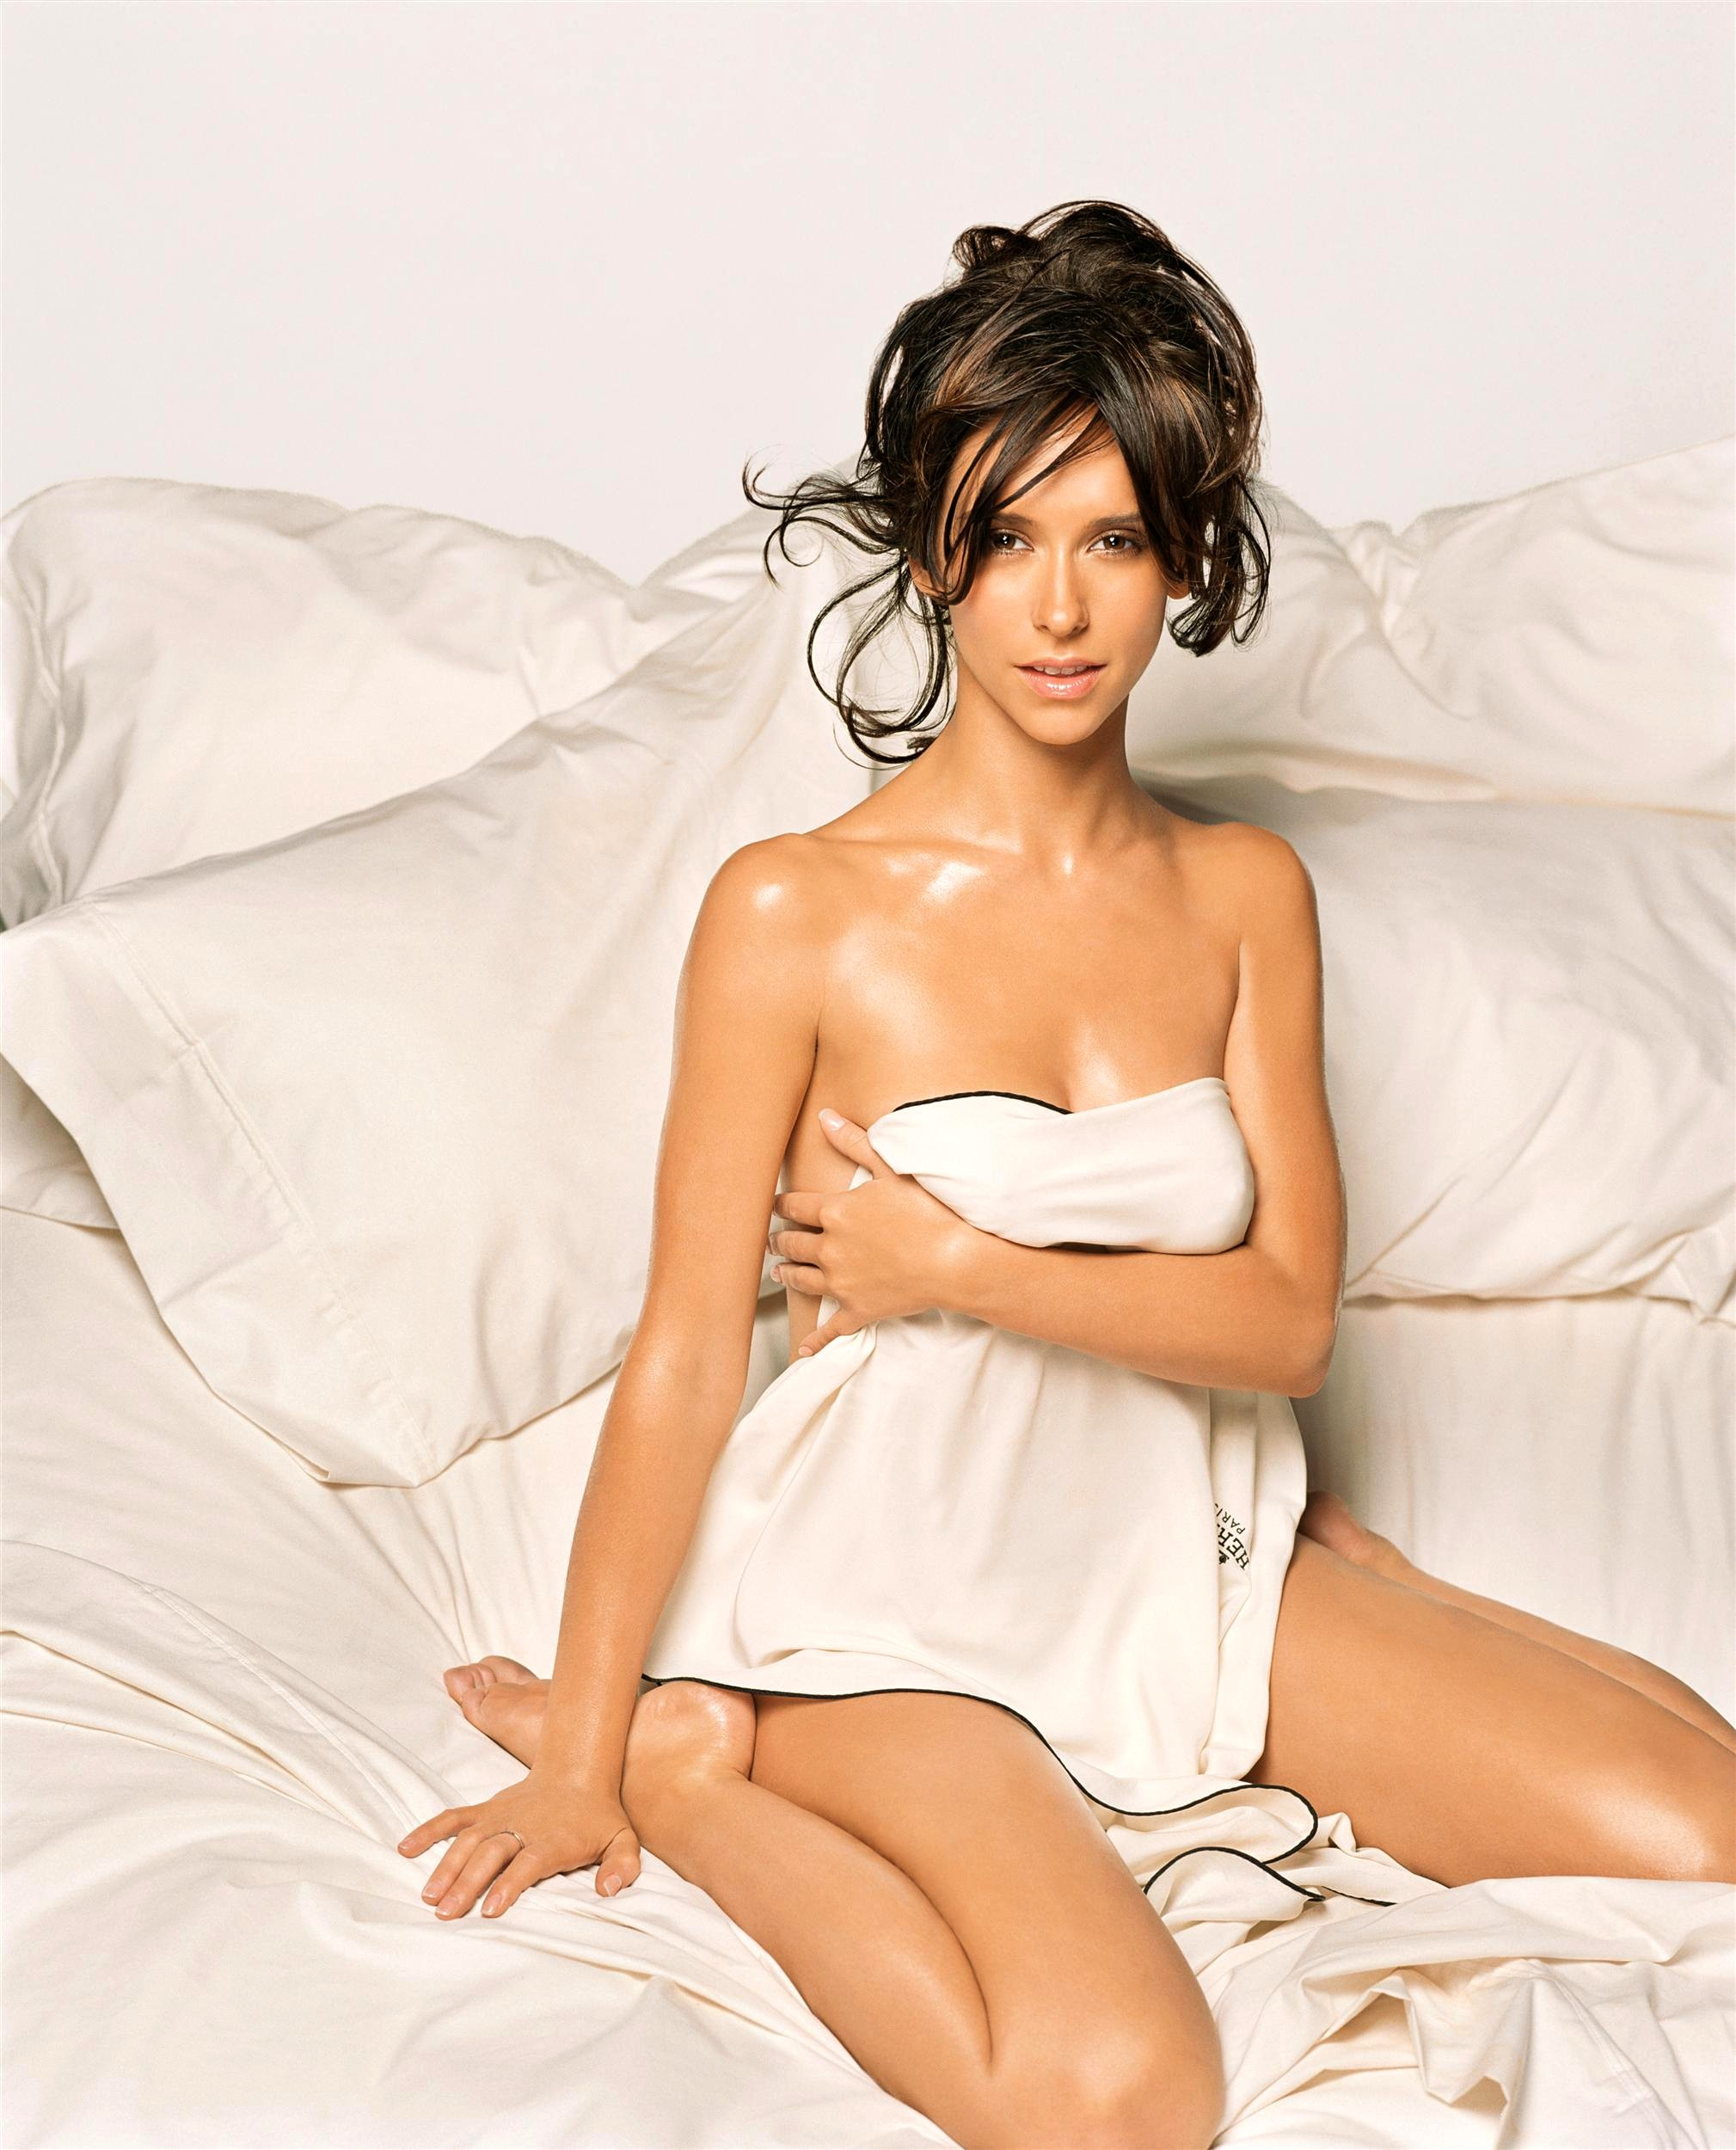 Jennifer love hewitt sexy and provocative pictures